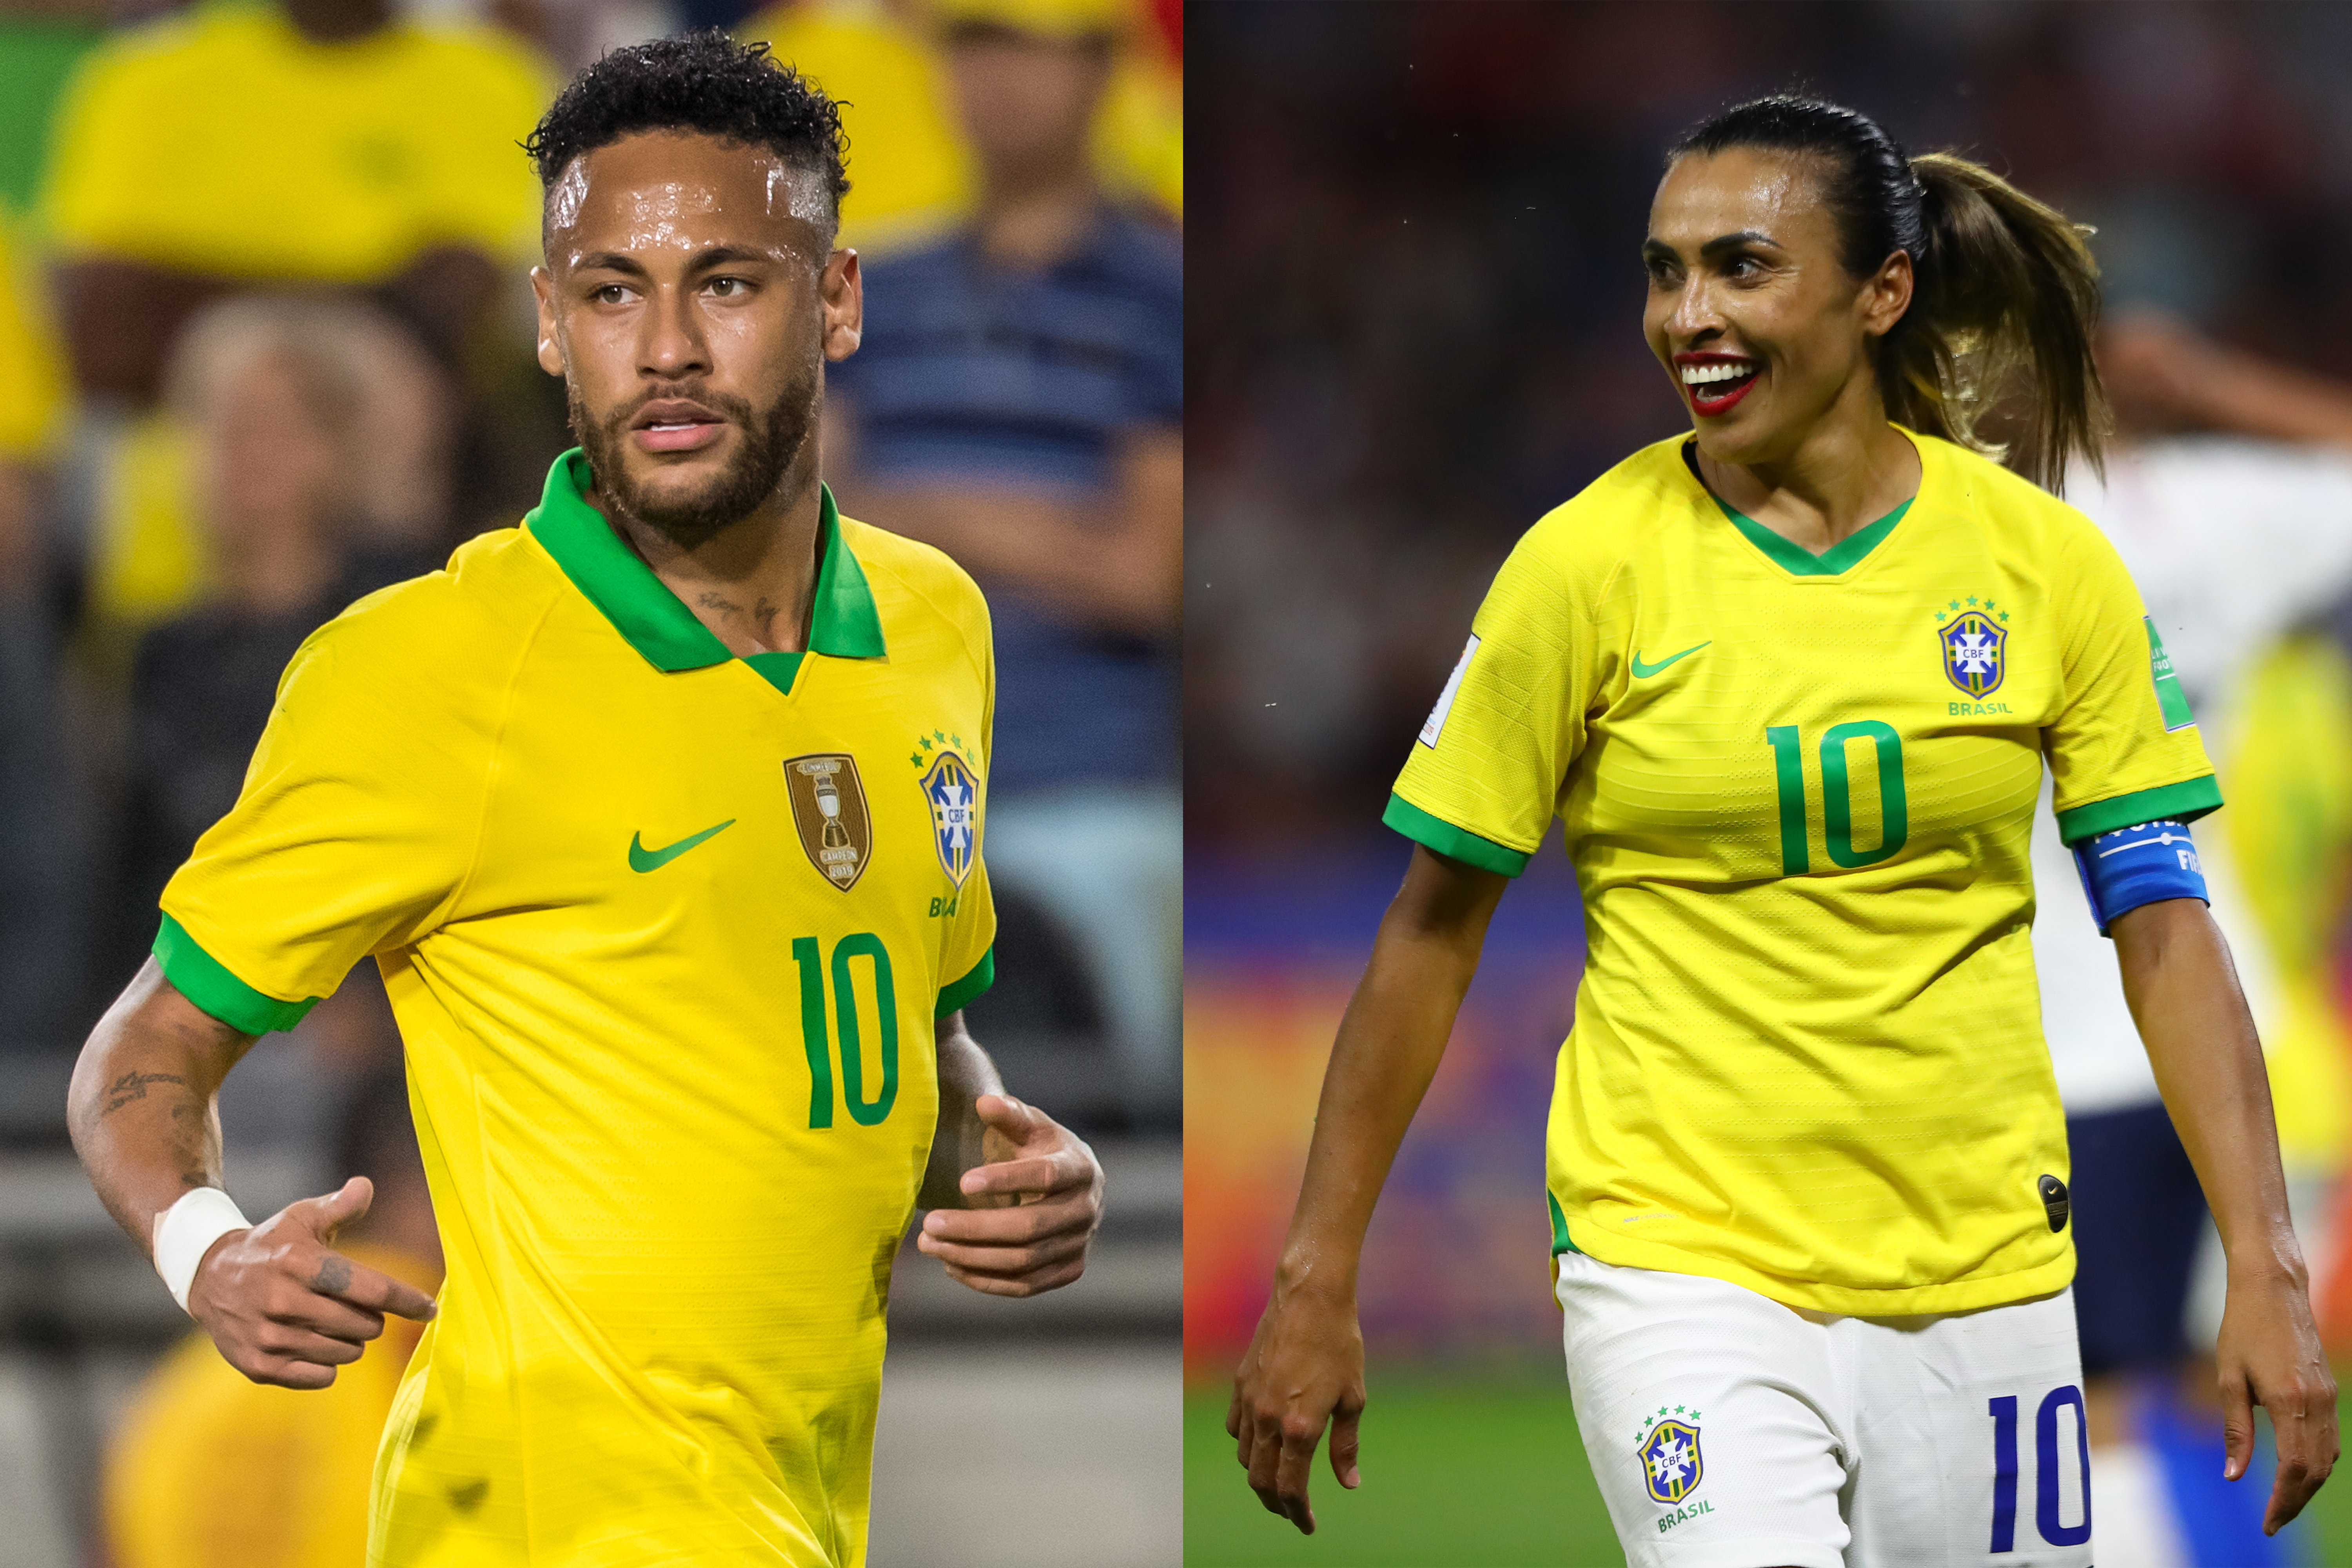 Brazil announces equal pay for men's and women's national teams